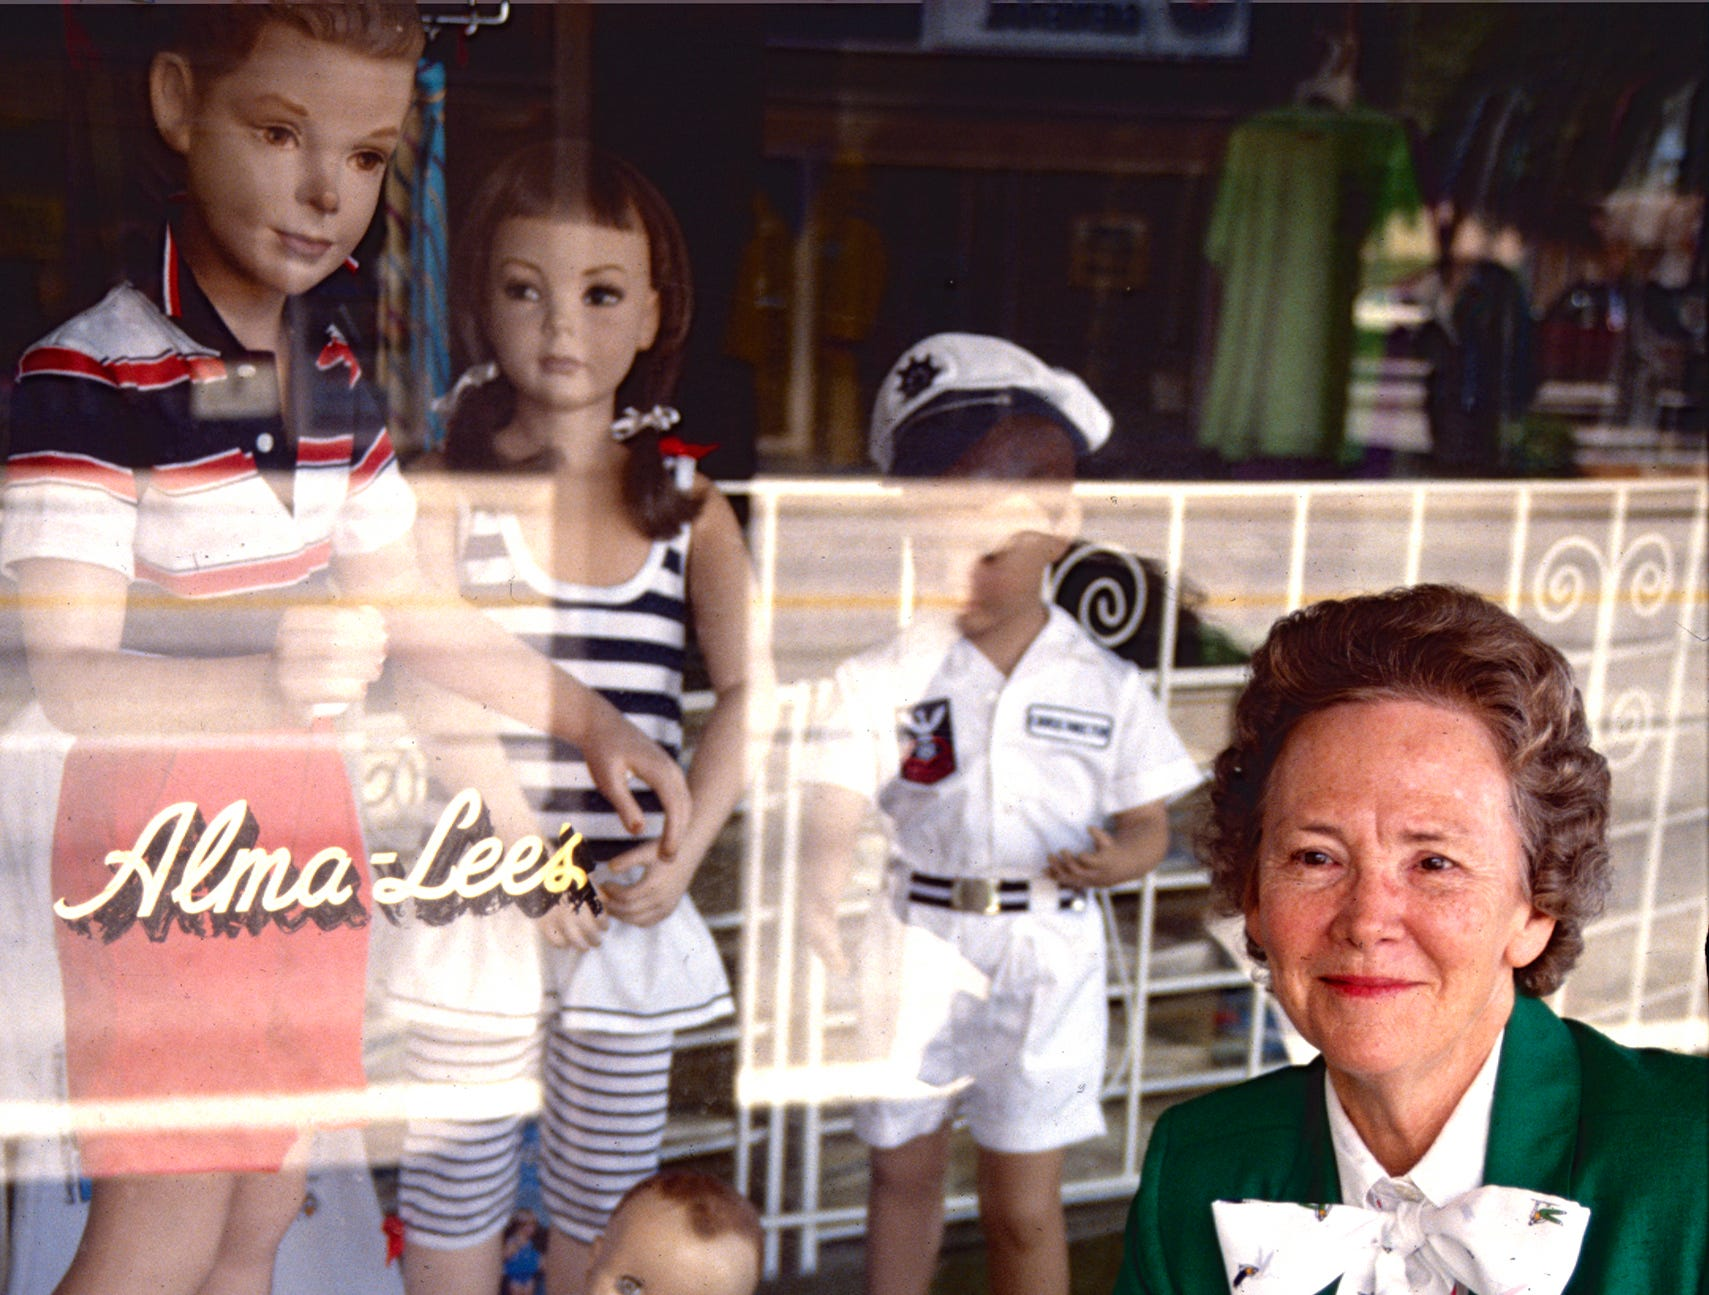 August, 1990 - Alma Lee Loy posed outside her store along S.R. 60, west of 14th Avenue. Lucy Pope Auxier was co-owner with Alma Lee of Alma Lee's Children's Clothing Shop until 1997.